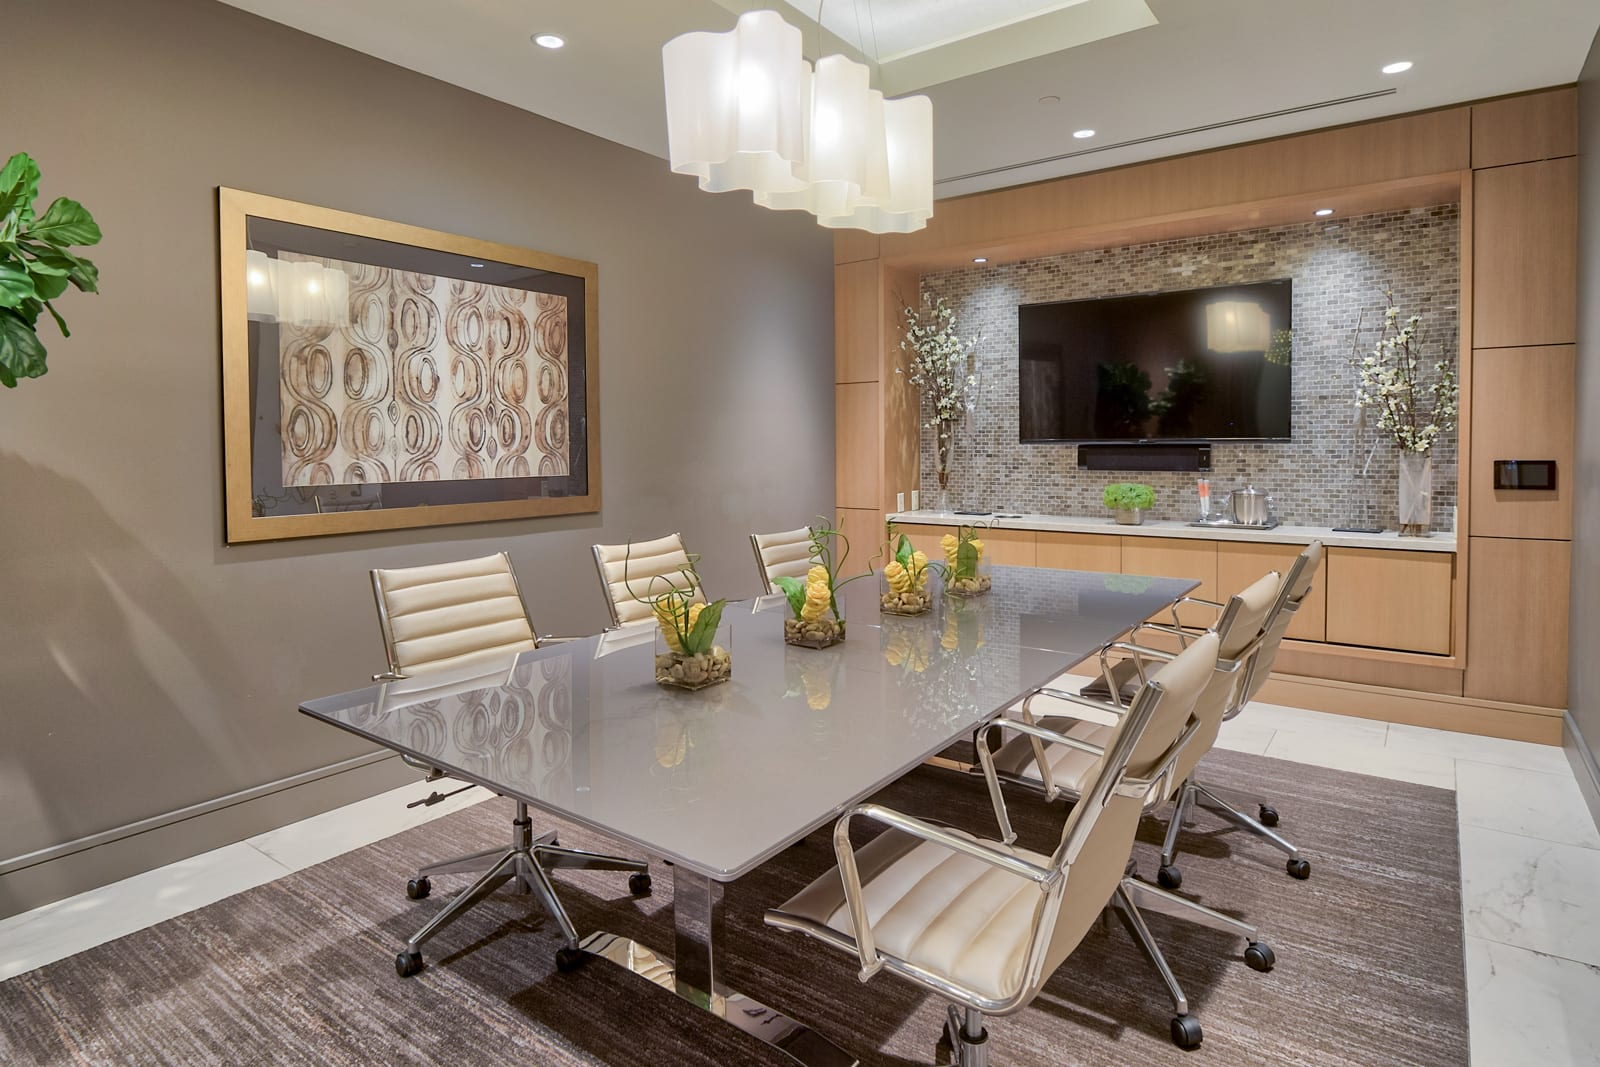 Conference room at Olympic by Windsor, CA, 90015